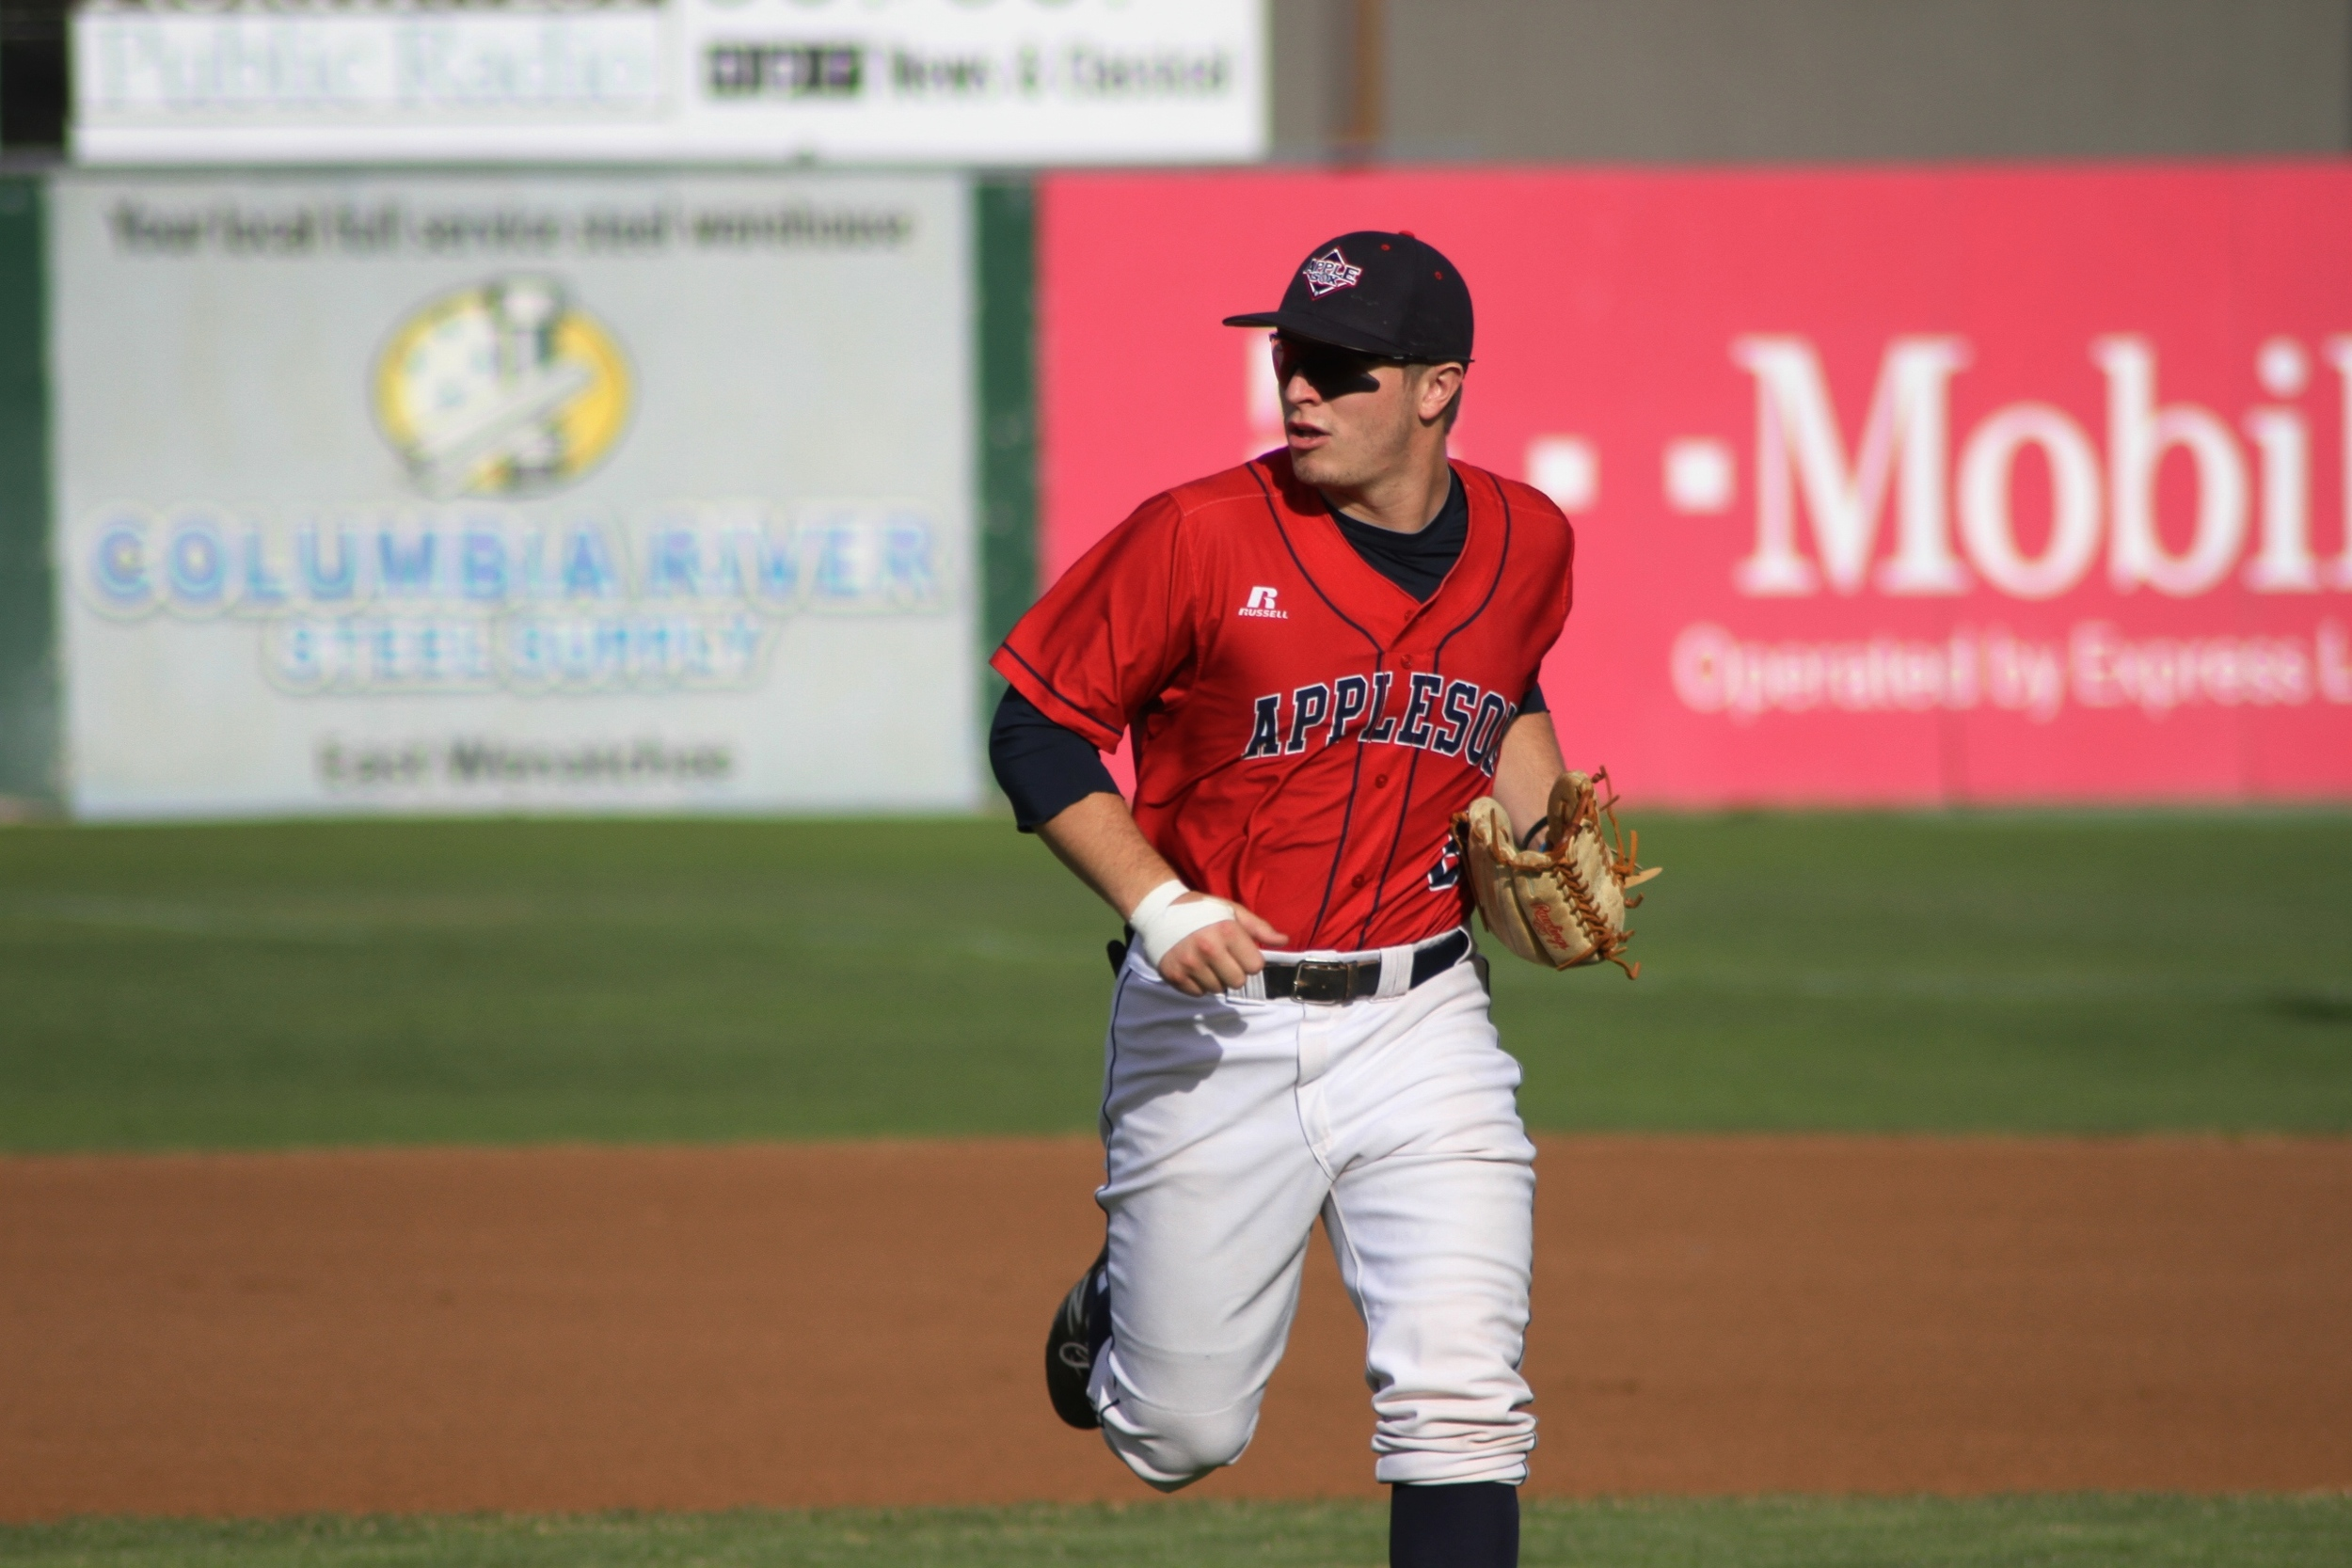 The AppleSox stay at home as part of a nine-game homestand, taking on the Walla Walla Sweets, starting at 7:05 p.m.